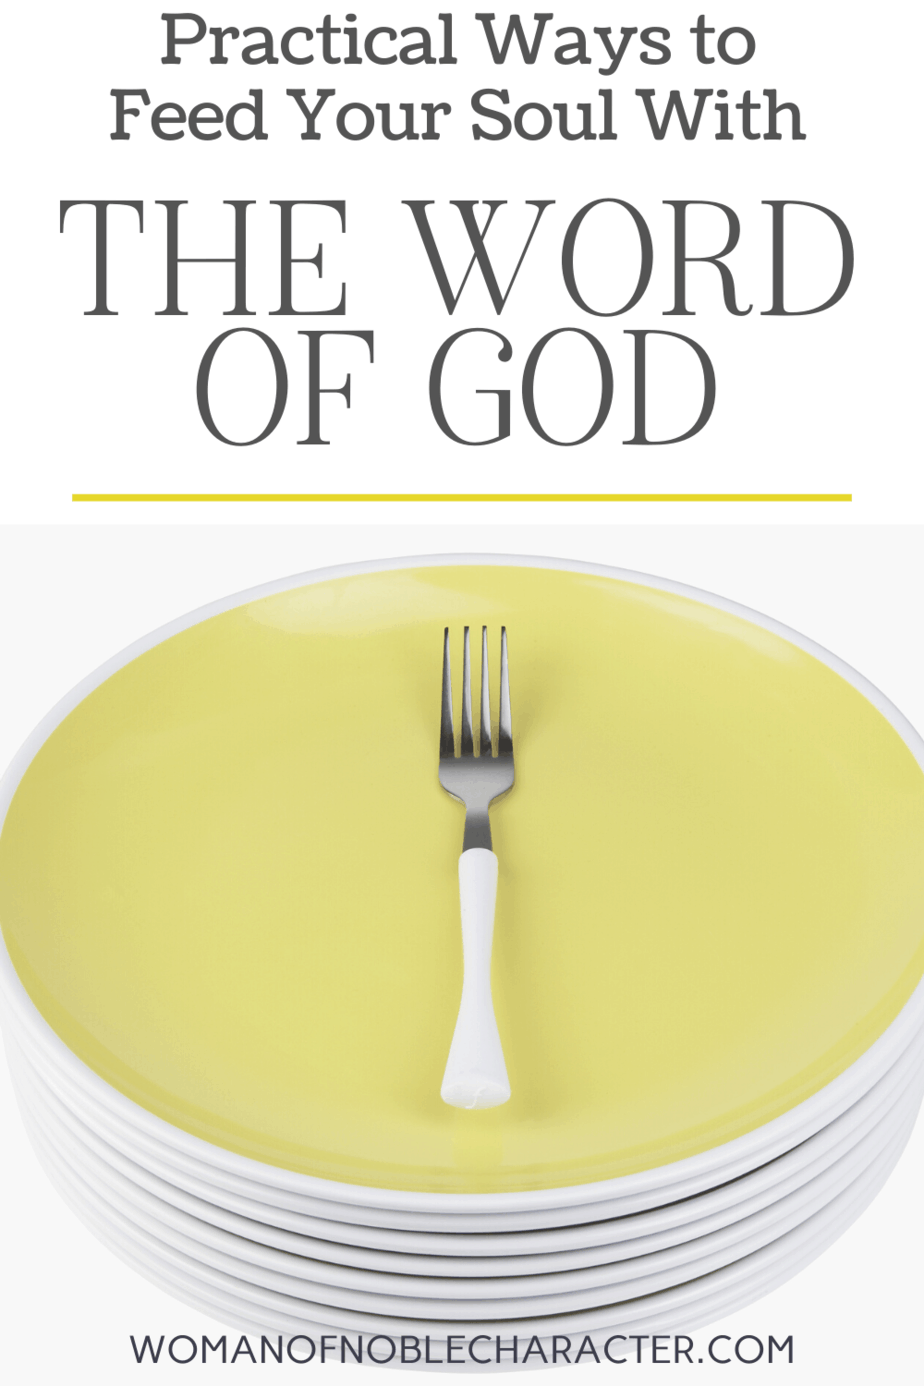 An image of yellow plates with a fork and a text overlay that says Practical Ways to Feed Your Soul with the Word of God